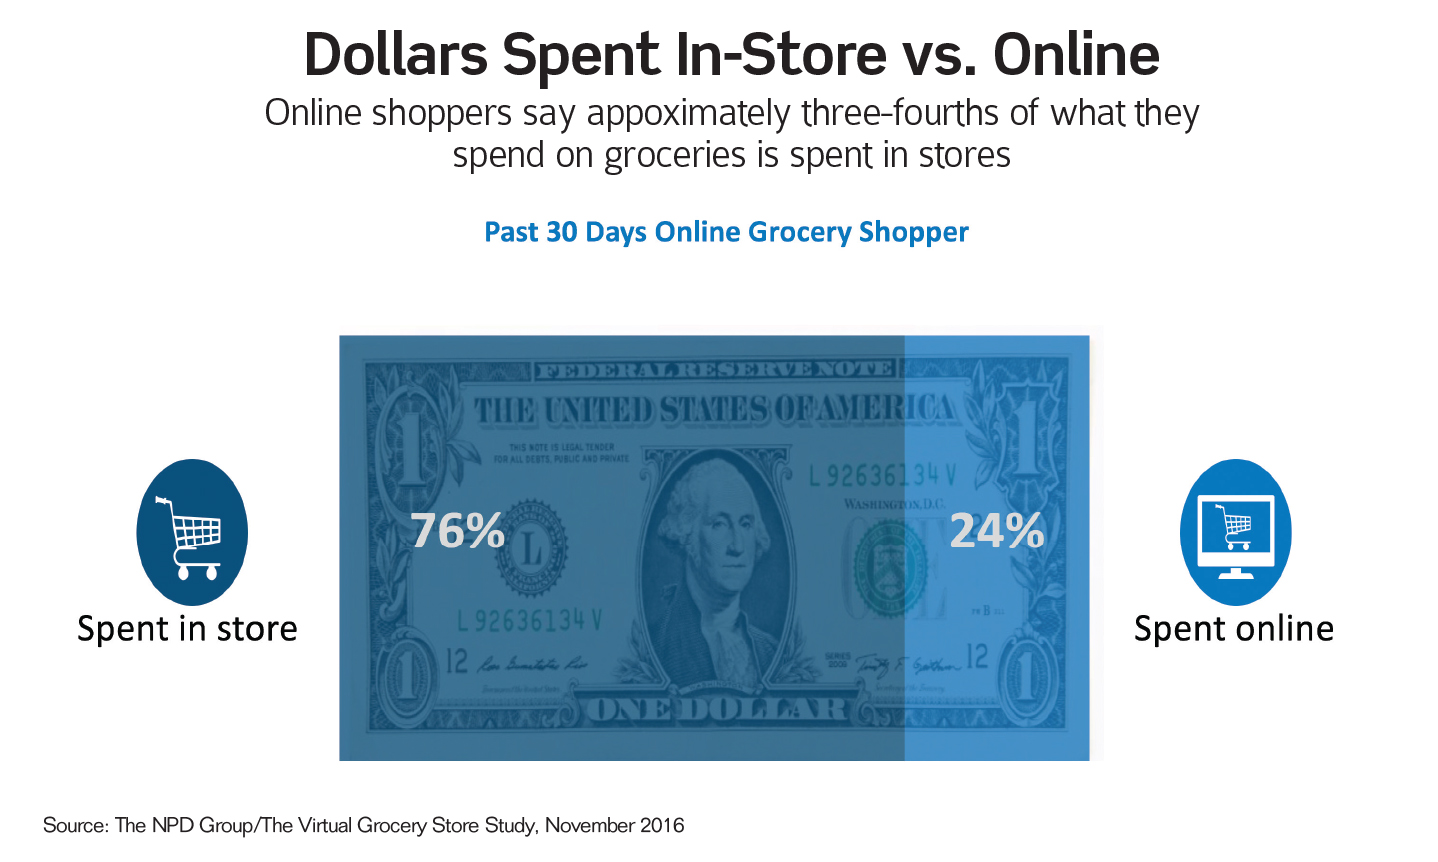 Dollars Spent In-Store vs. Online